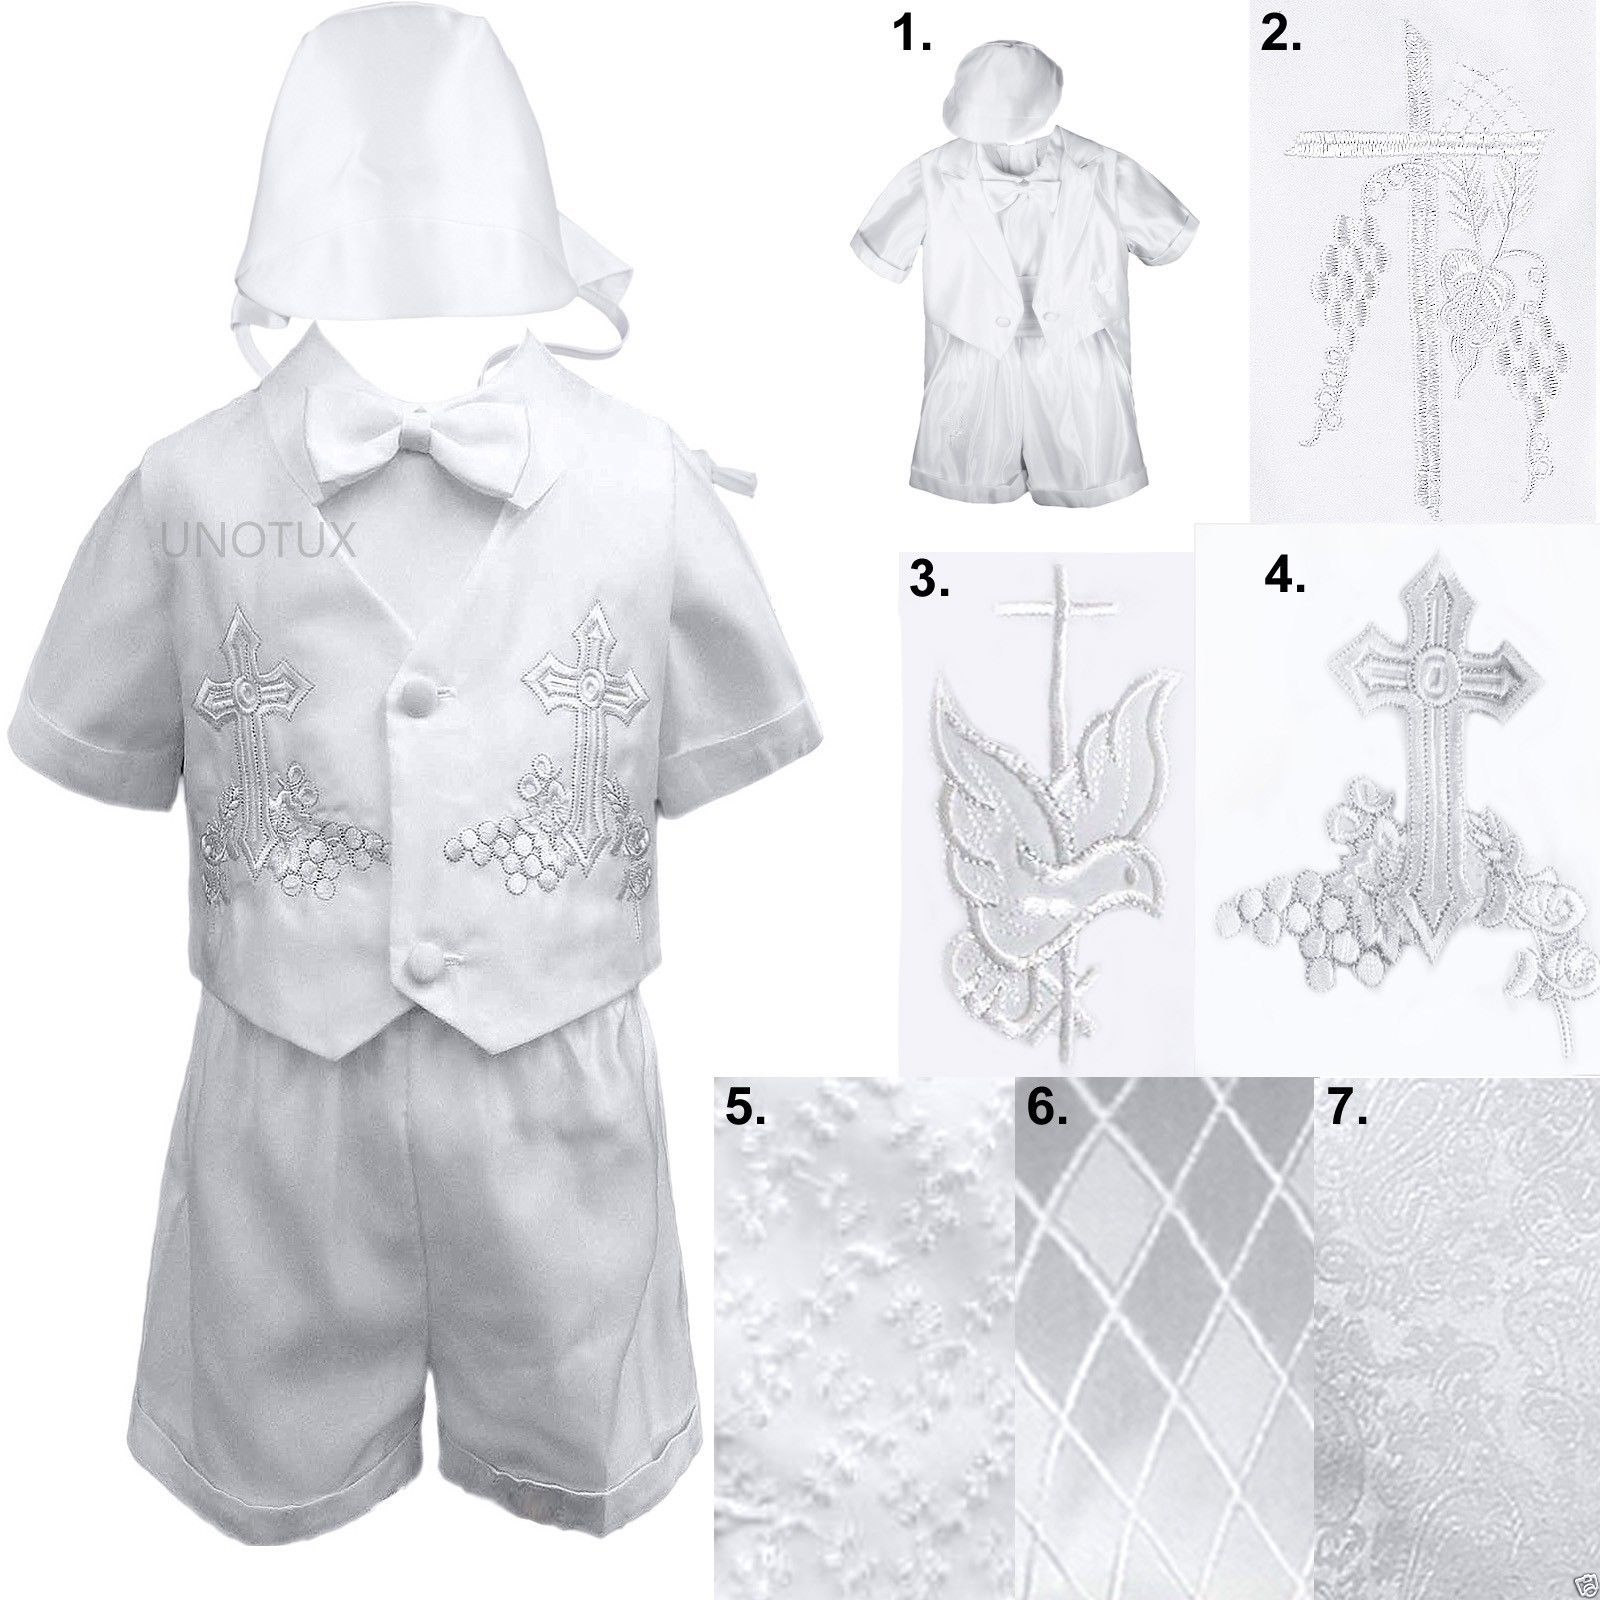 New Infant Toddler Boys Christening Baptism Vest Set Outfits White from Baby 4T